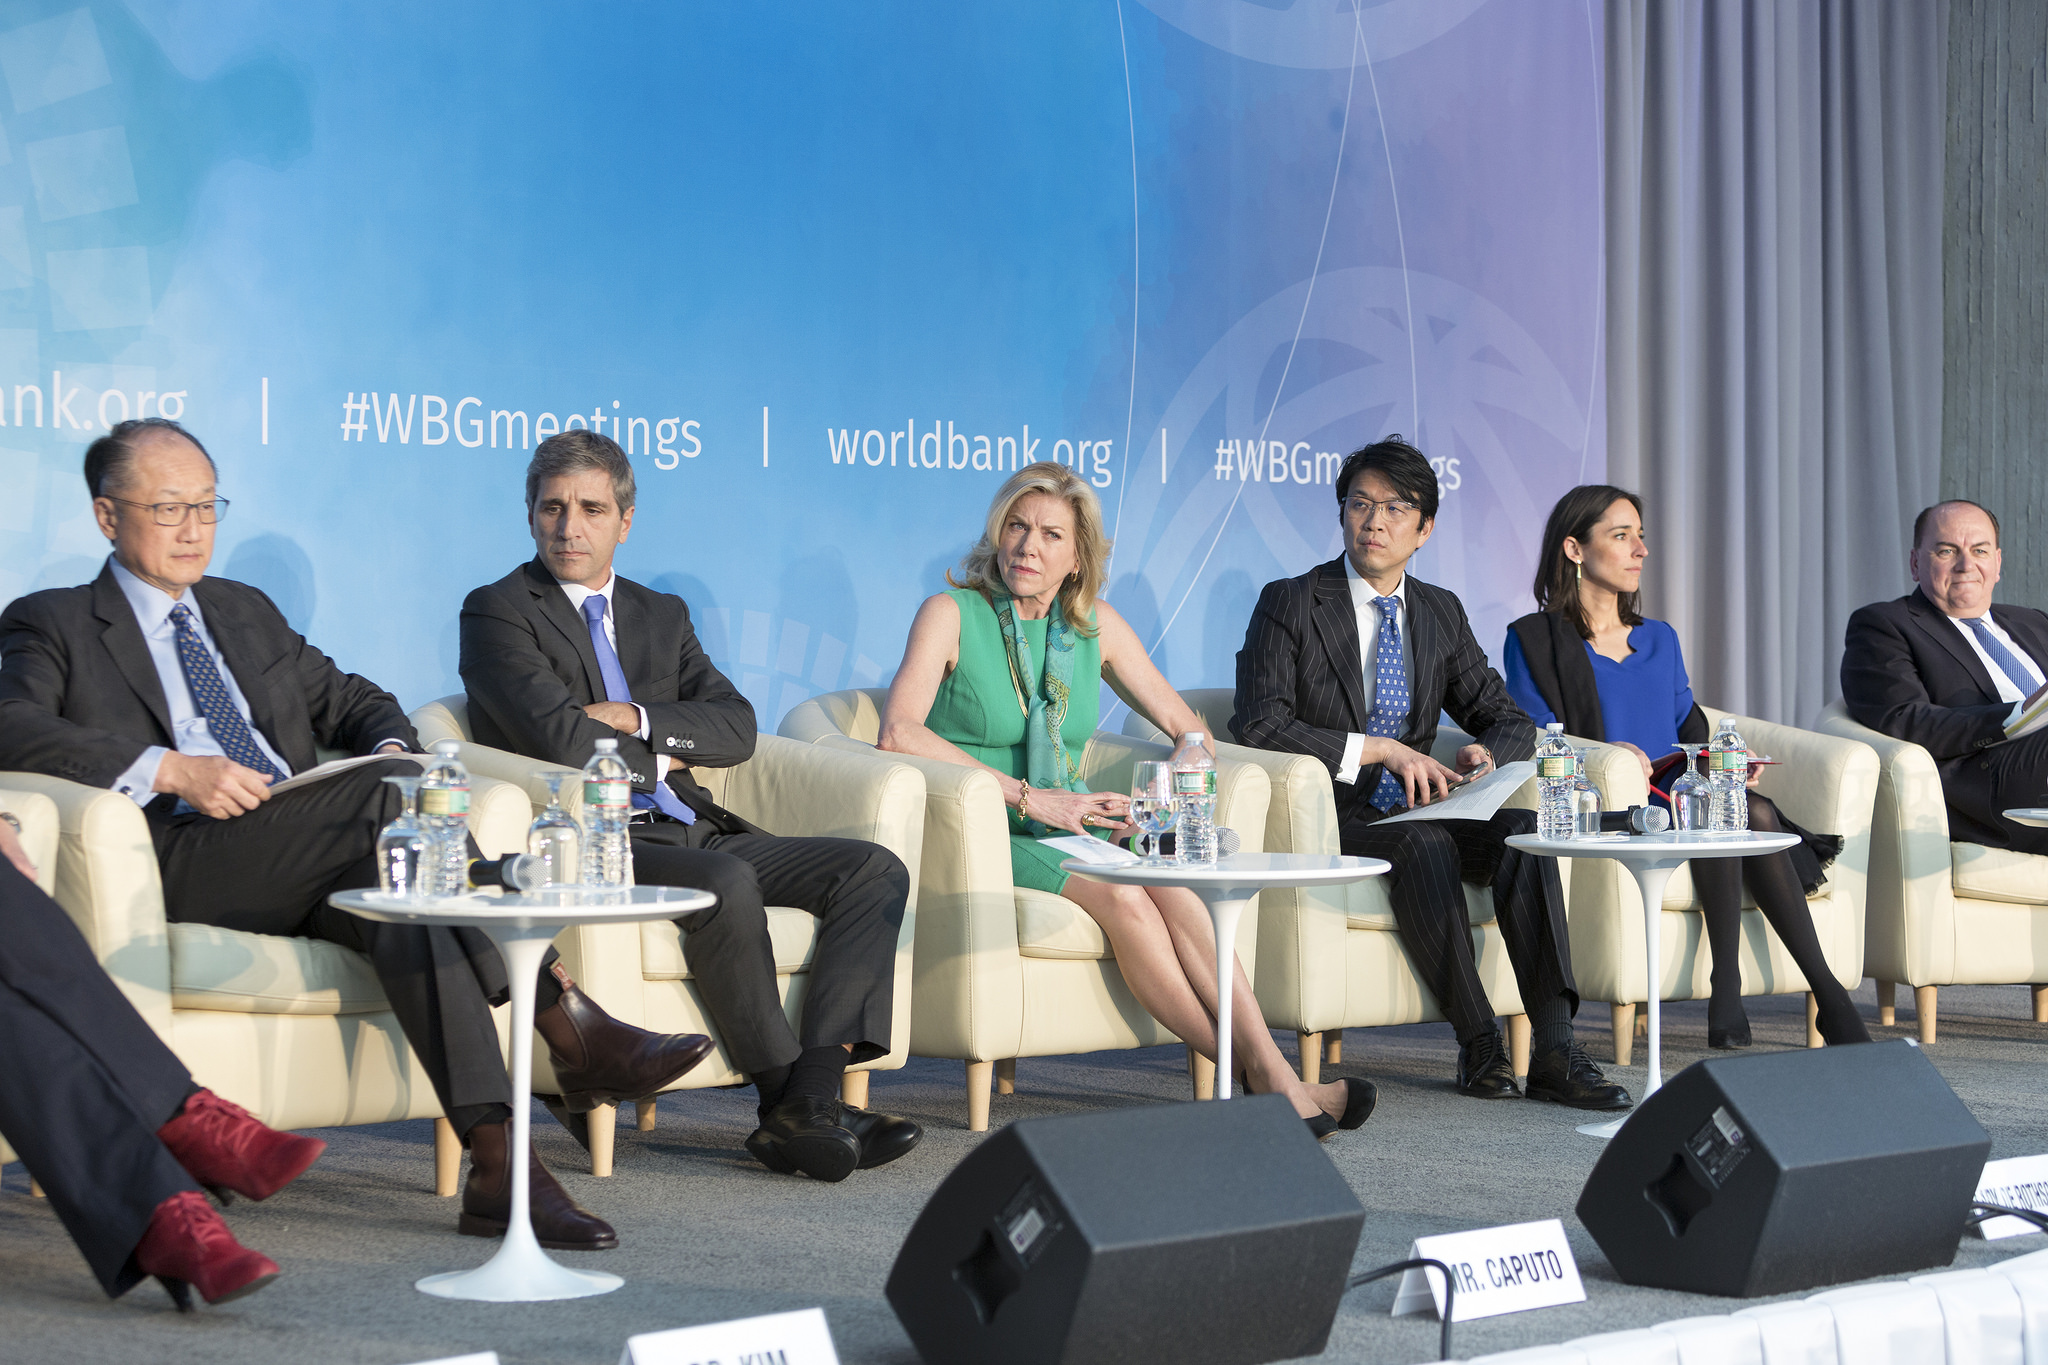 Clean Energy Access Needs Friends: Why Tackling More Than One SDG is the Smarter Thing to Do